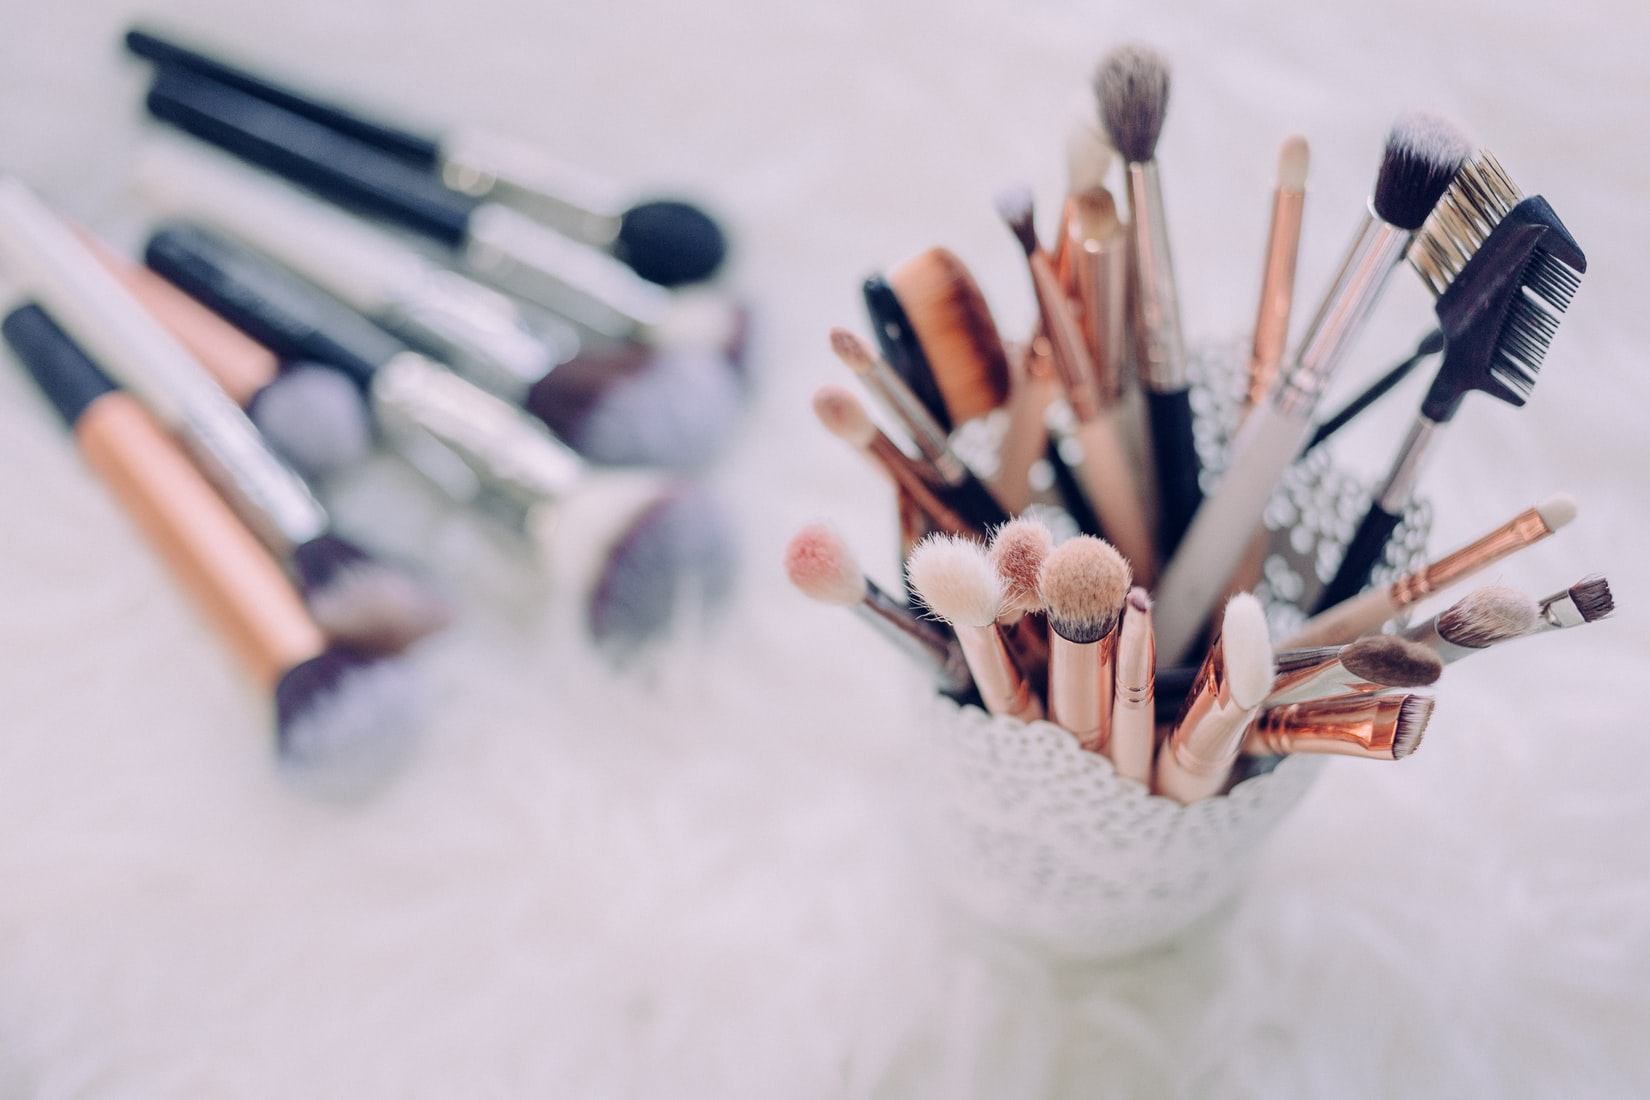 Ways Of Making Your Own Natural Makeup